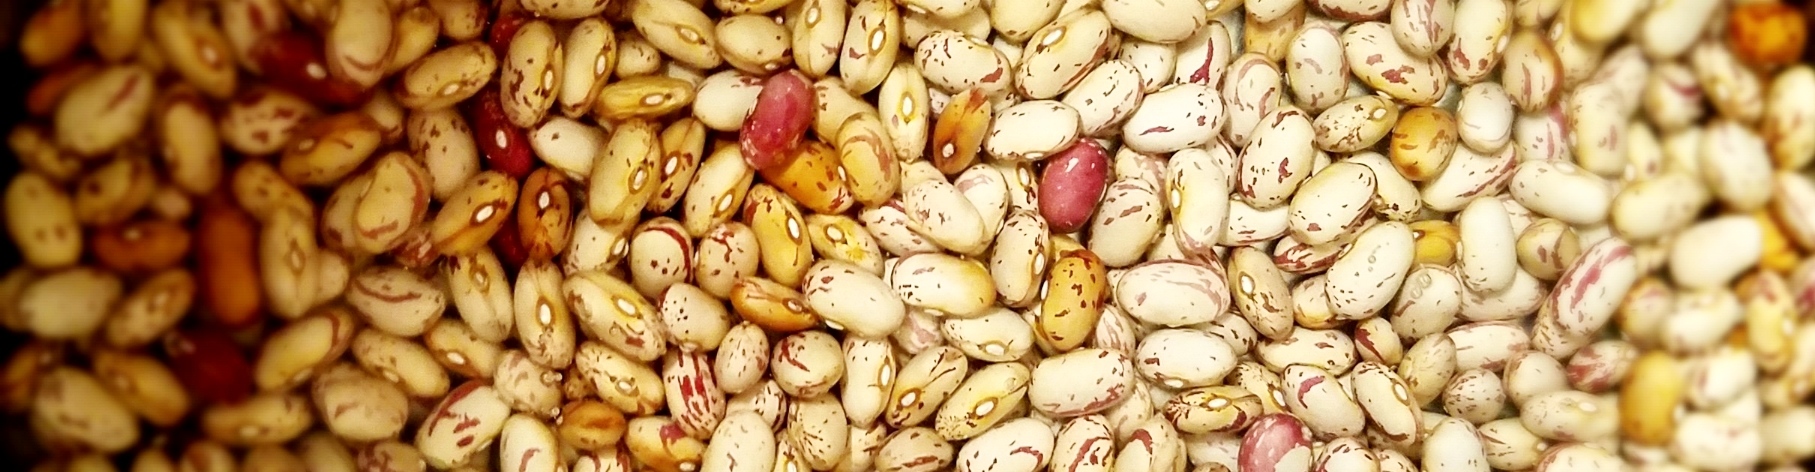 Cranberry beans soaking in water.